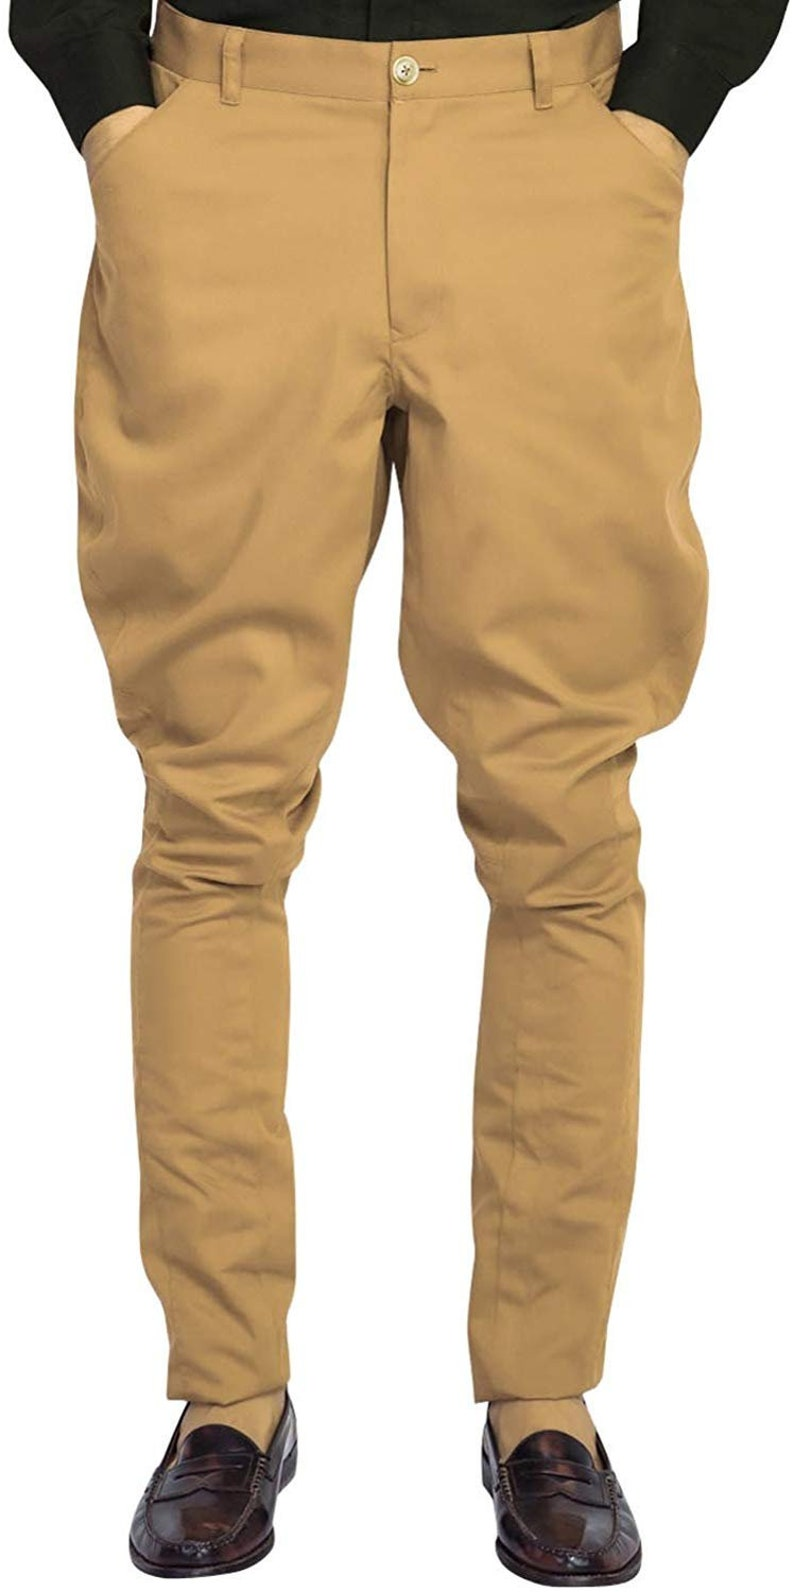 Men's Vintage Pants, Trousers, Jeans, Overalls Men/women Equestrian Jodhpurs Pants Camel Cotton Jodhpuri Breeches Baggy Pant $80.00 AT vintagedancer.com